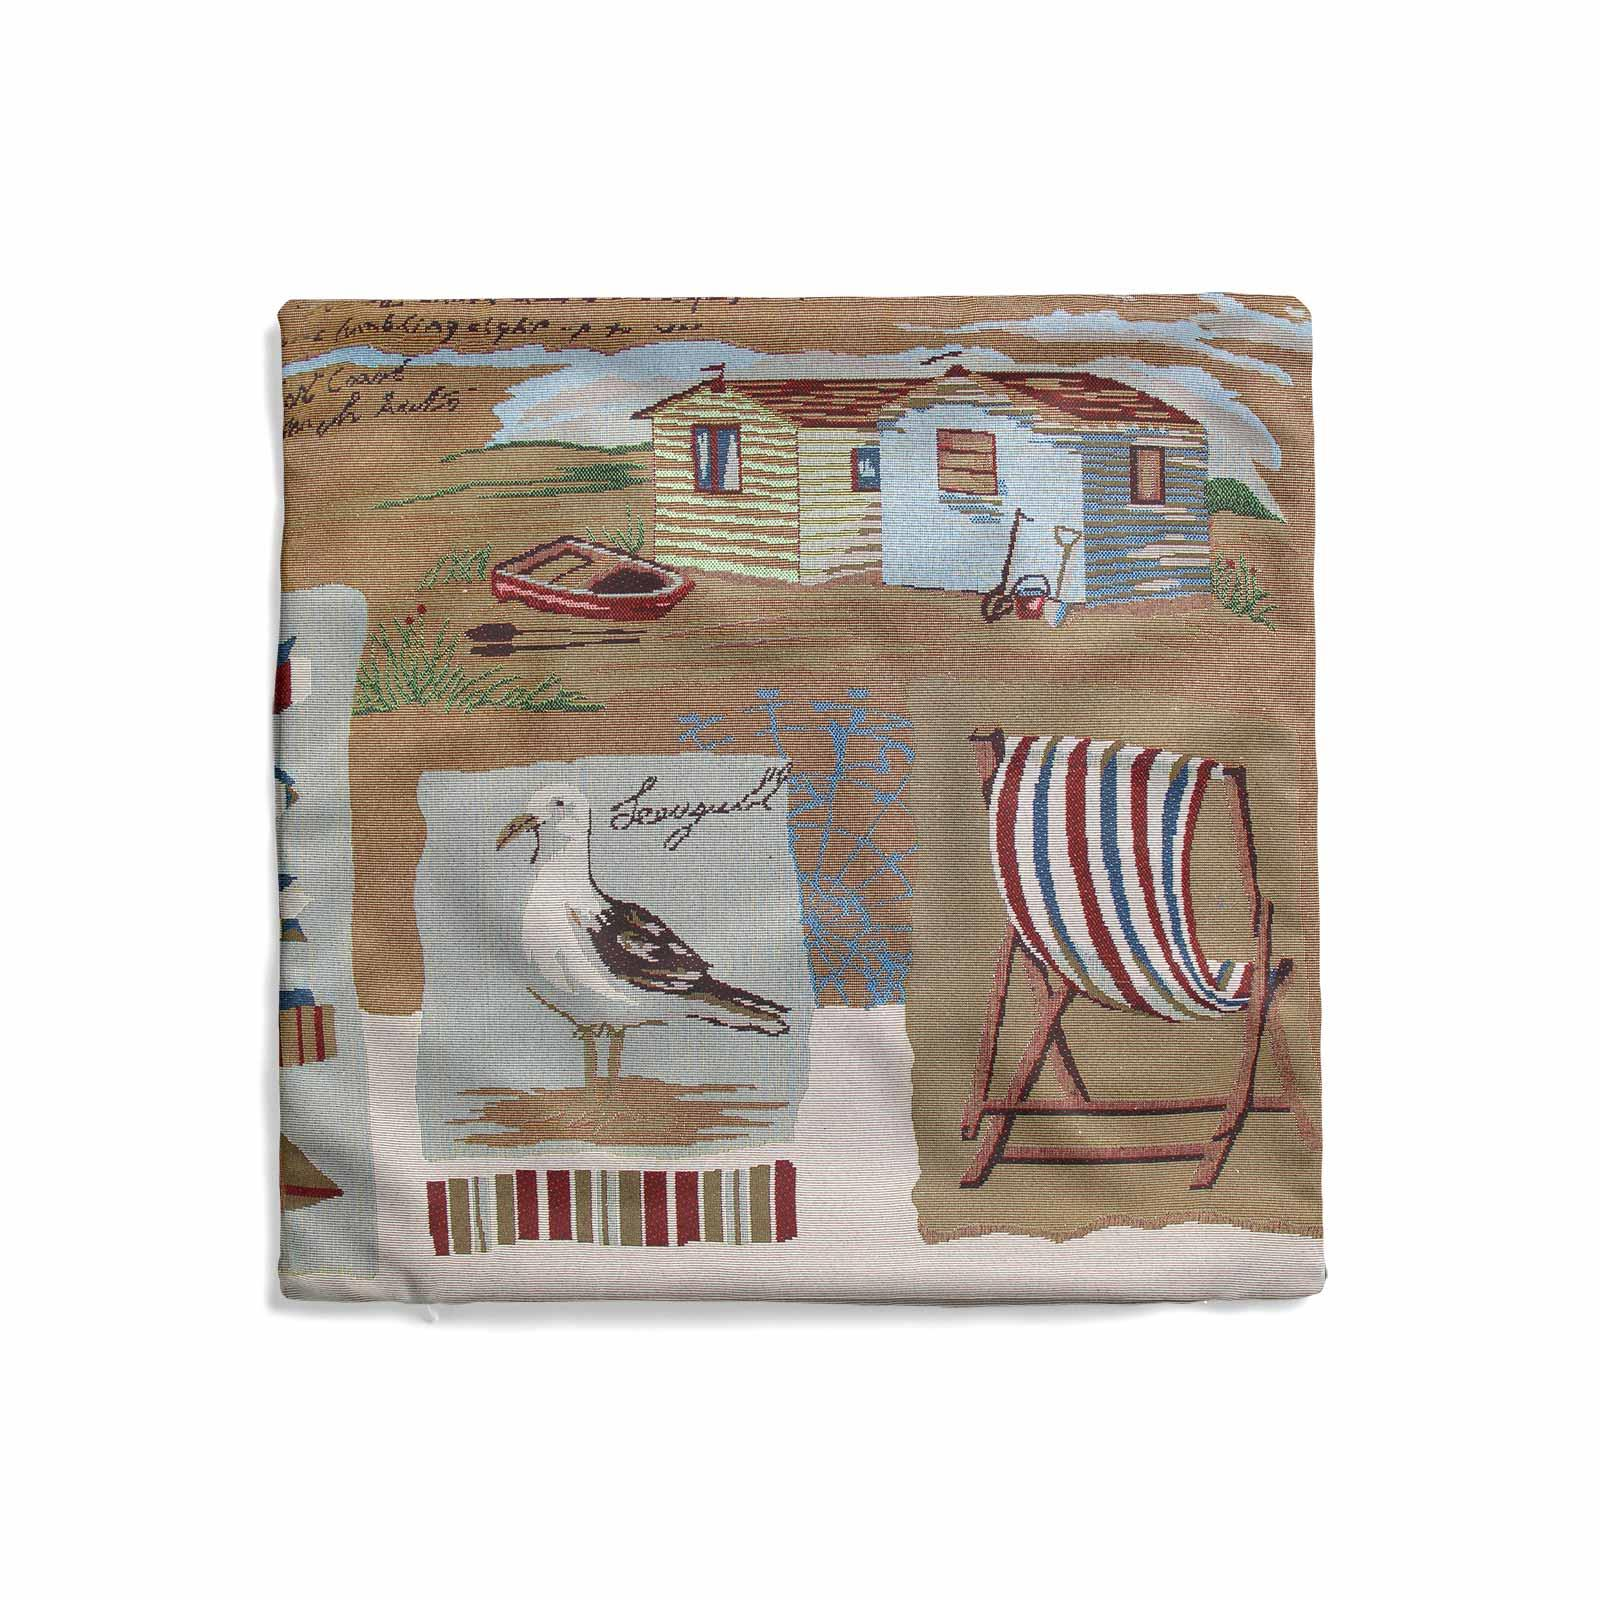 Tapestry-Cushion-Covers-Vintage-Pillow-Cover-Collection-18-034-45cm-Filled-Cushions thumbnail 175